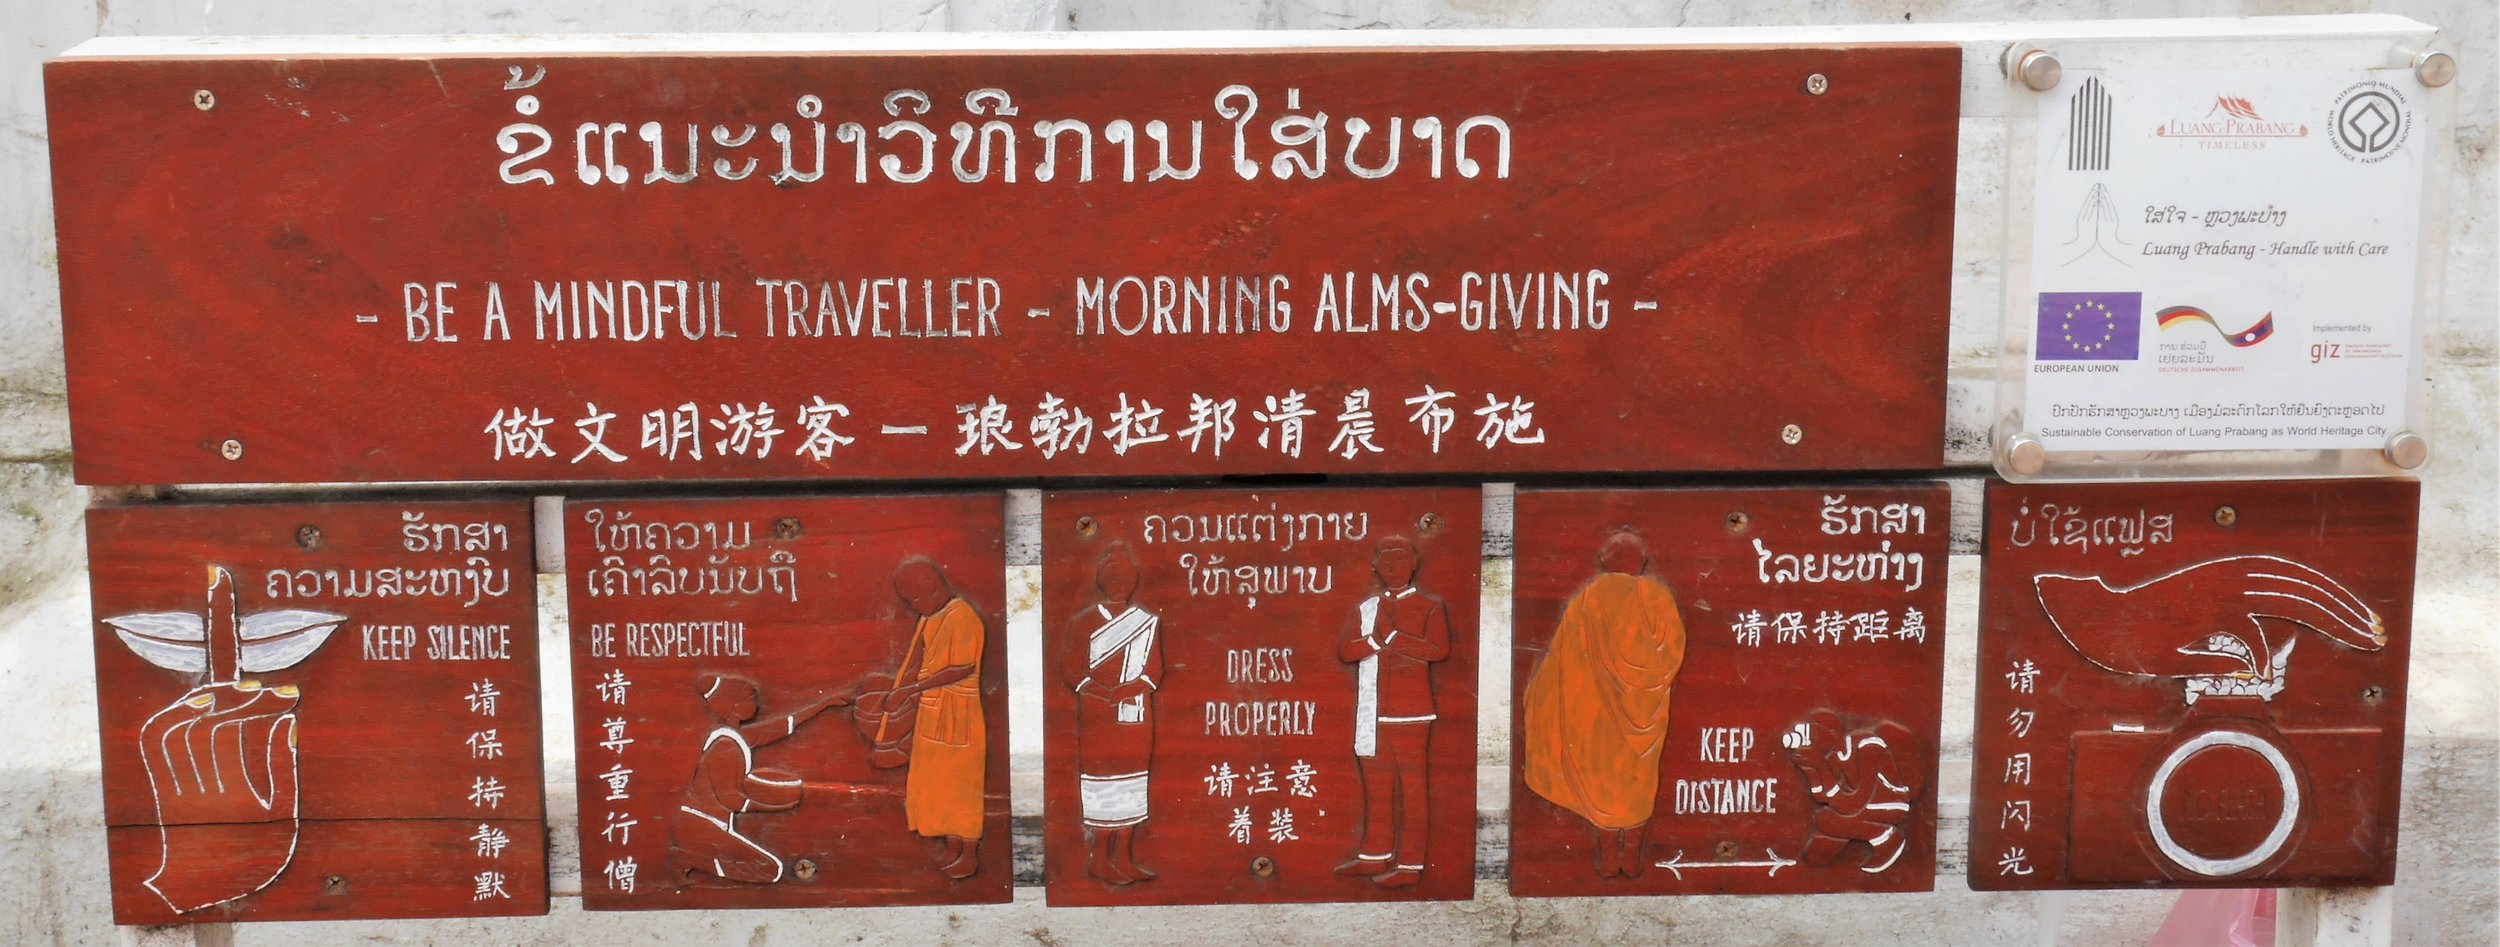 regulations for respectful participation in the morning alms giving ceremony - Luang Prabang